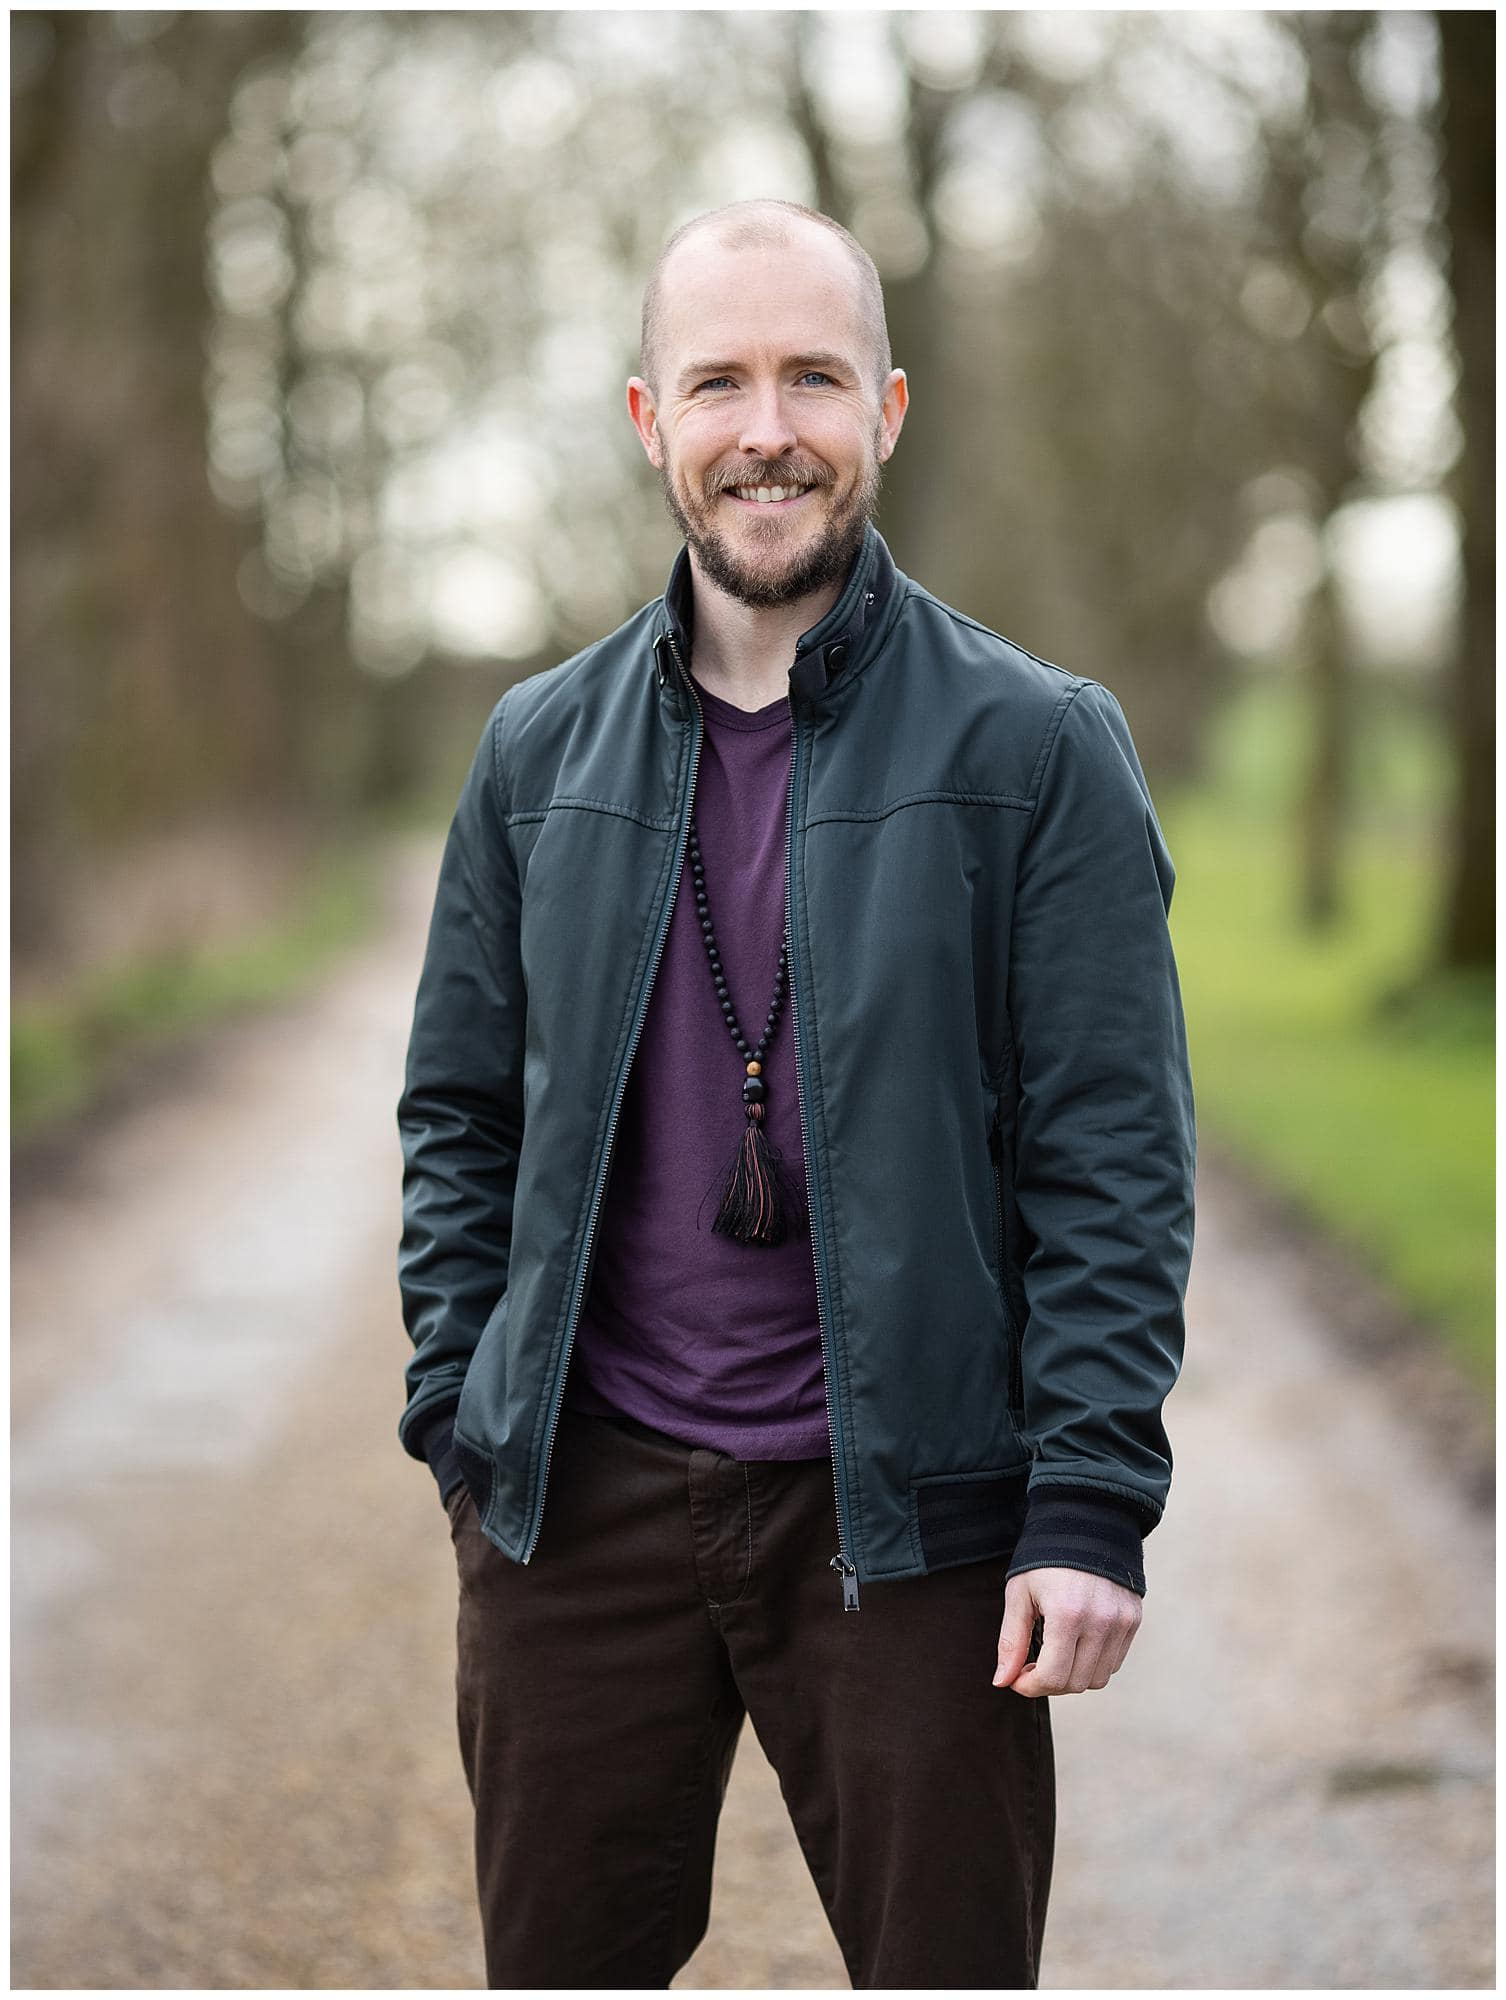 Personal Branding Headshot of a man standing on a country lane in Stoke By Clare, Suffolk